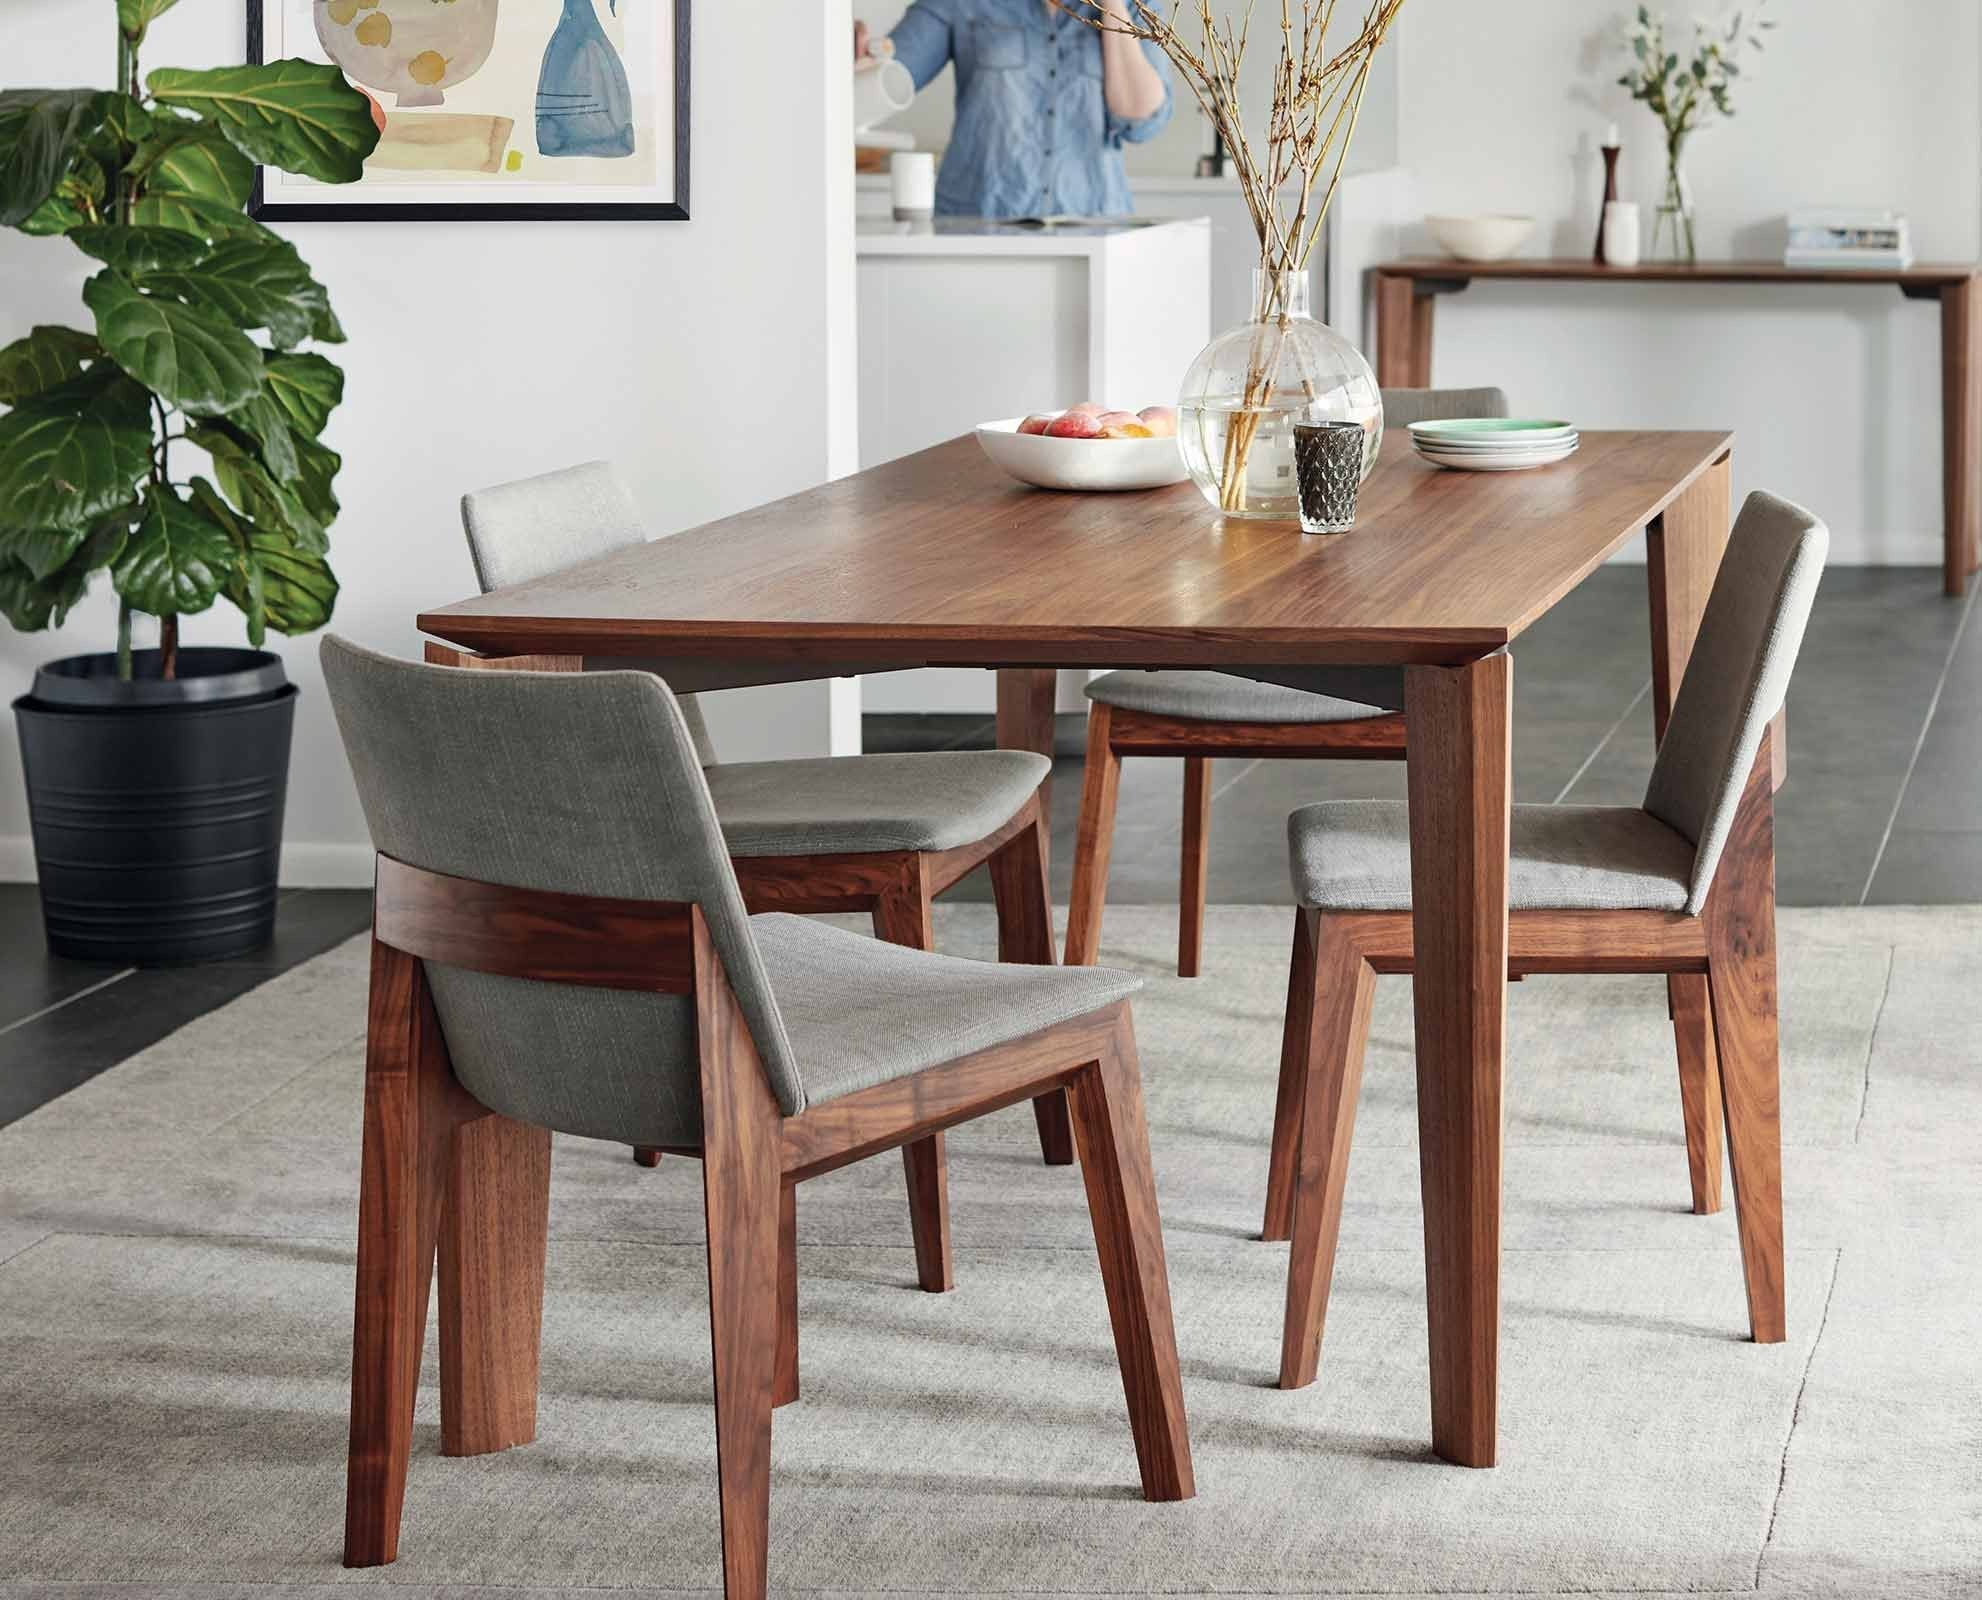 Mid-Century Modern Style for Dining Rooms - Scandinavian ...